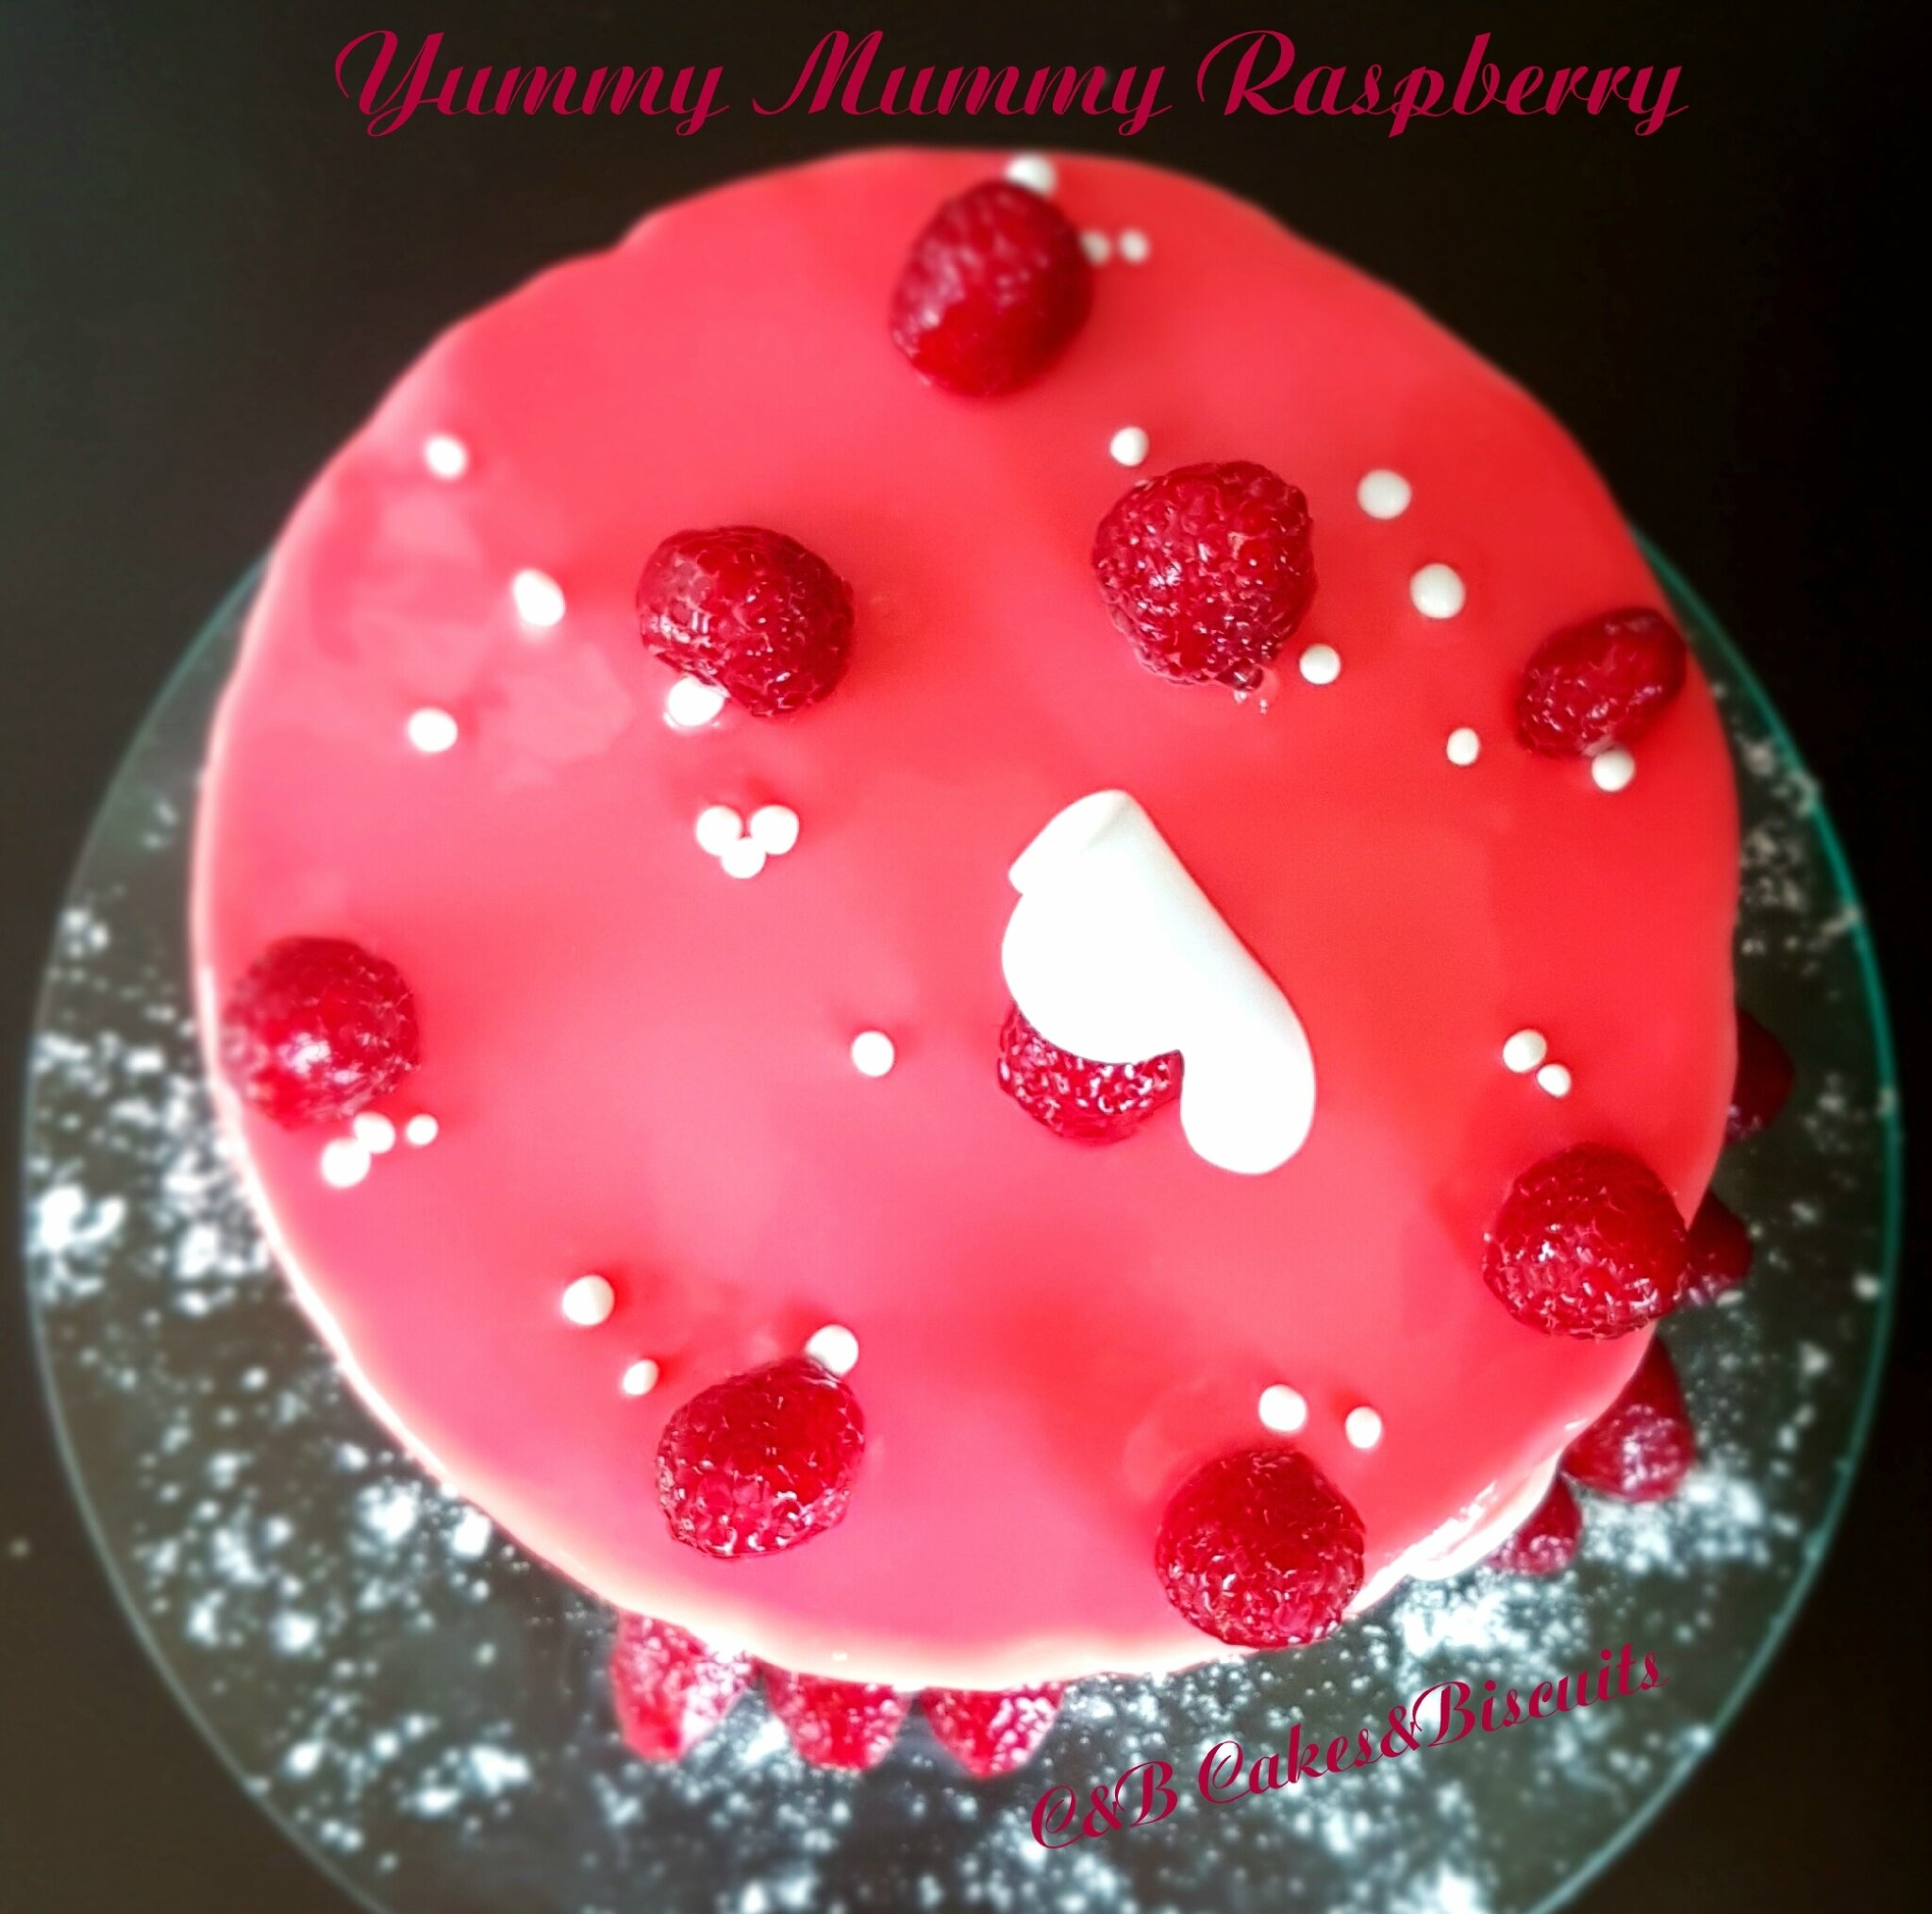 Yummy Mummy Raspberry